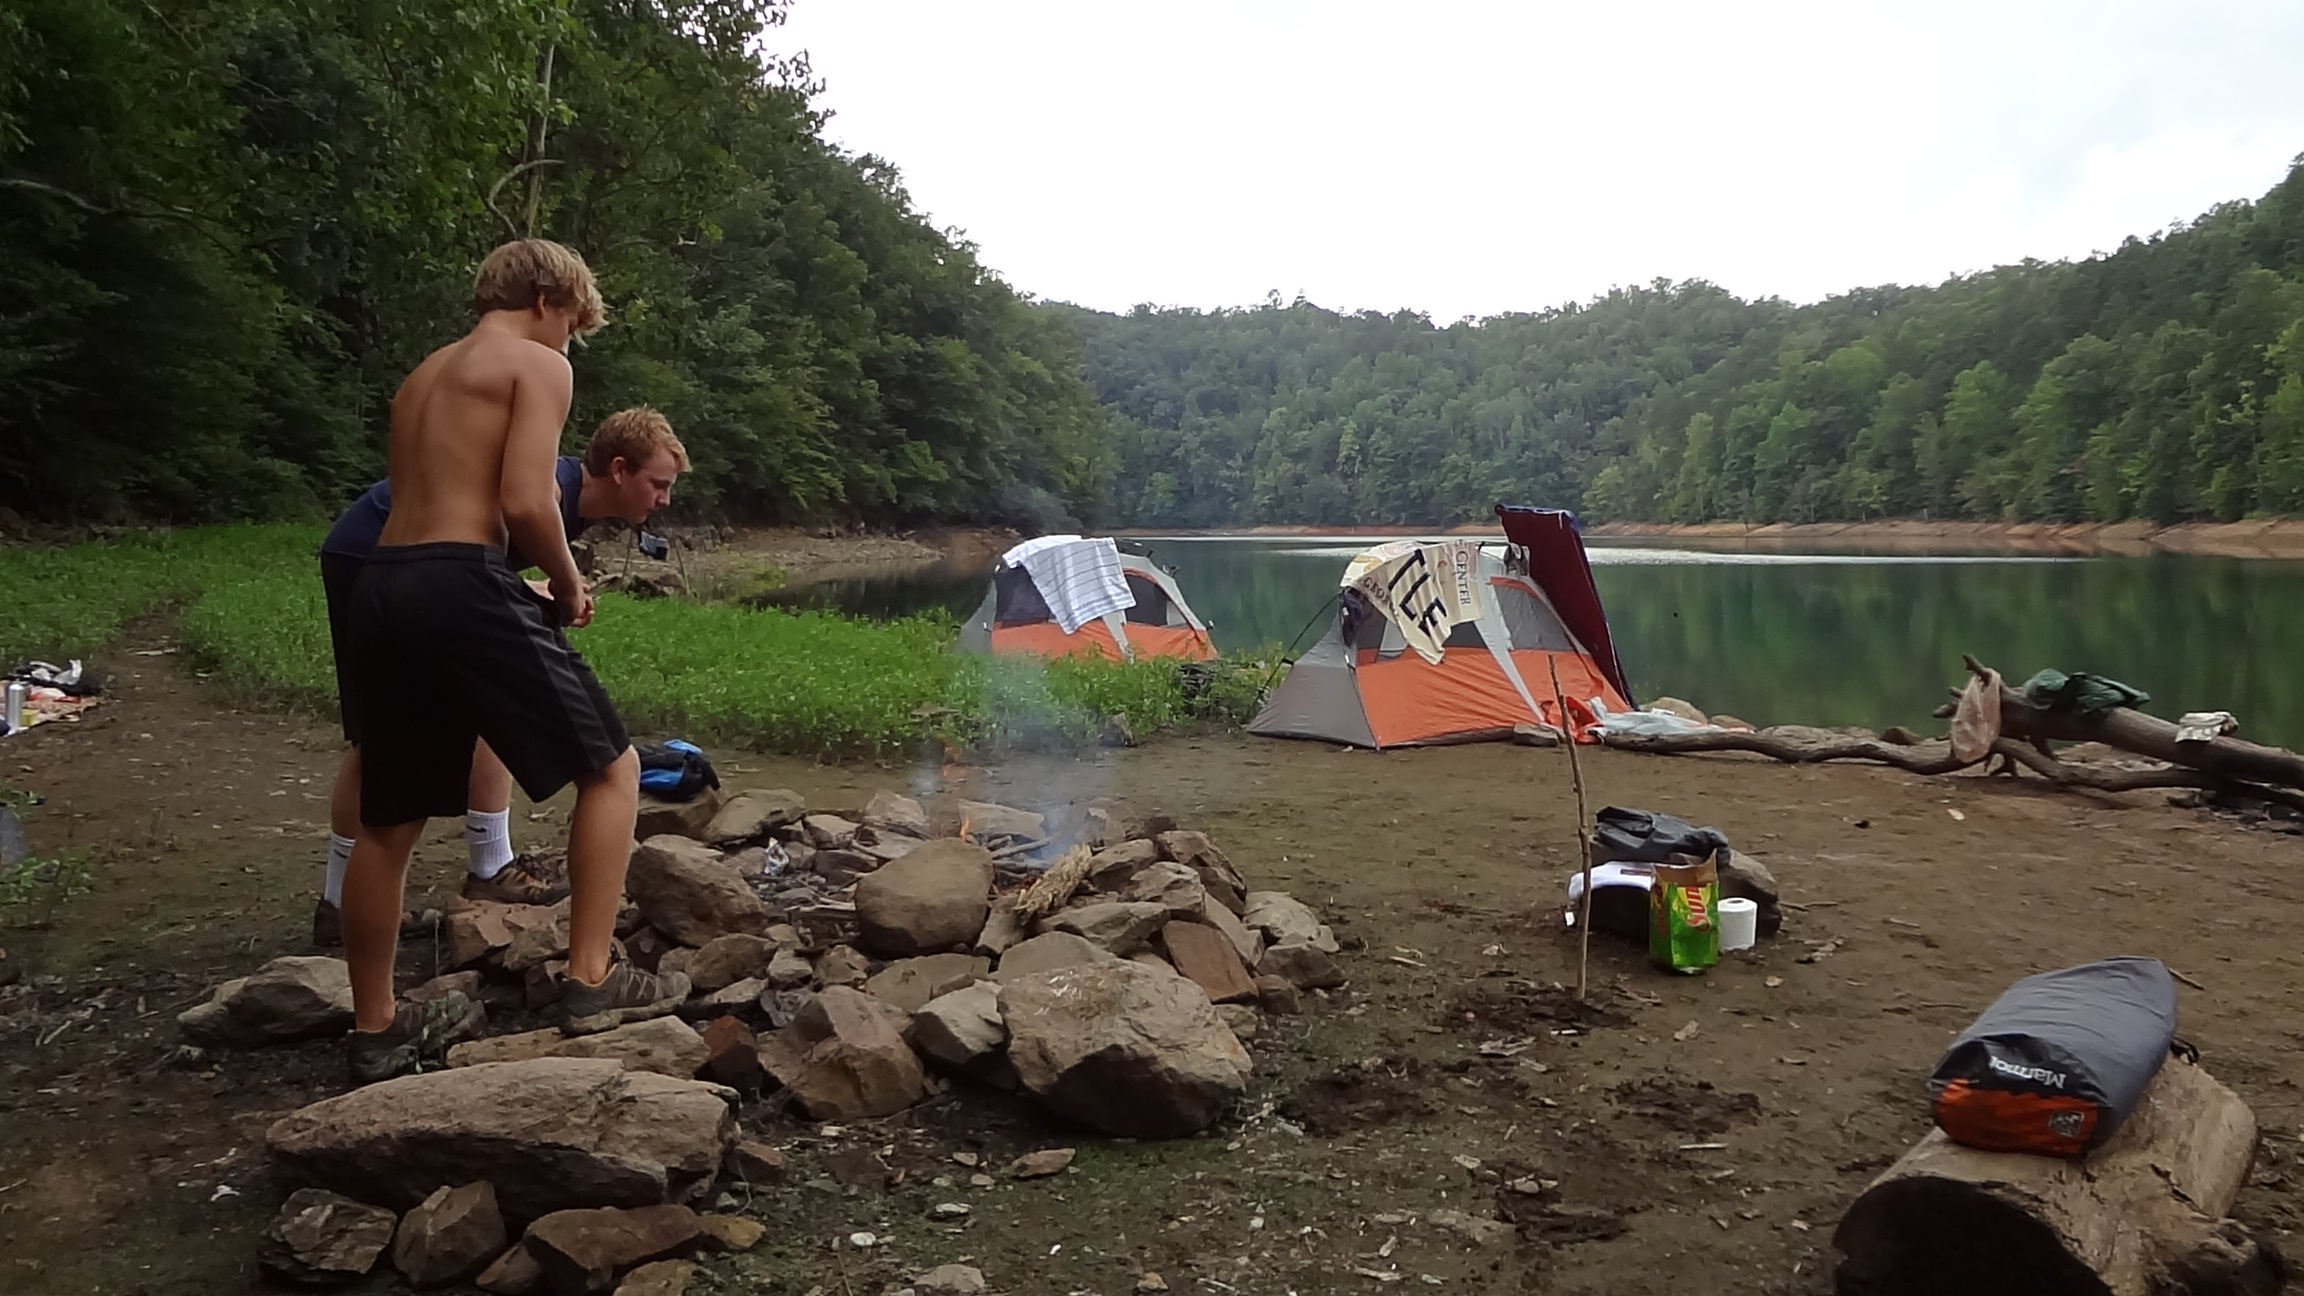 Great Smoky Mountains Backcountry Camping At Site 66 Fire 2